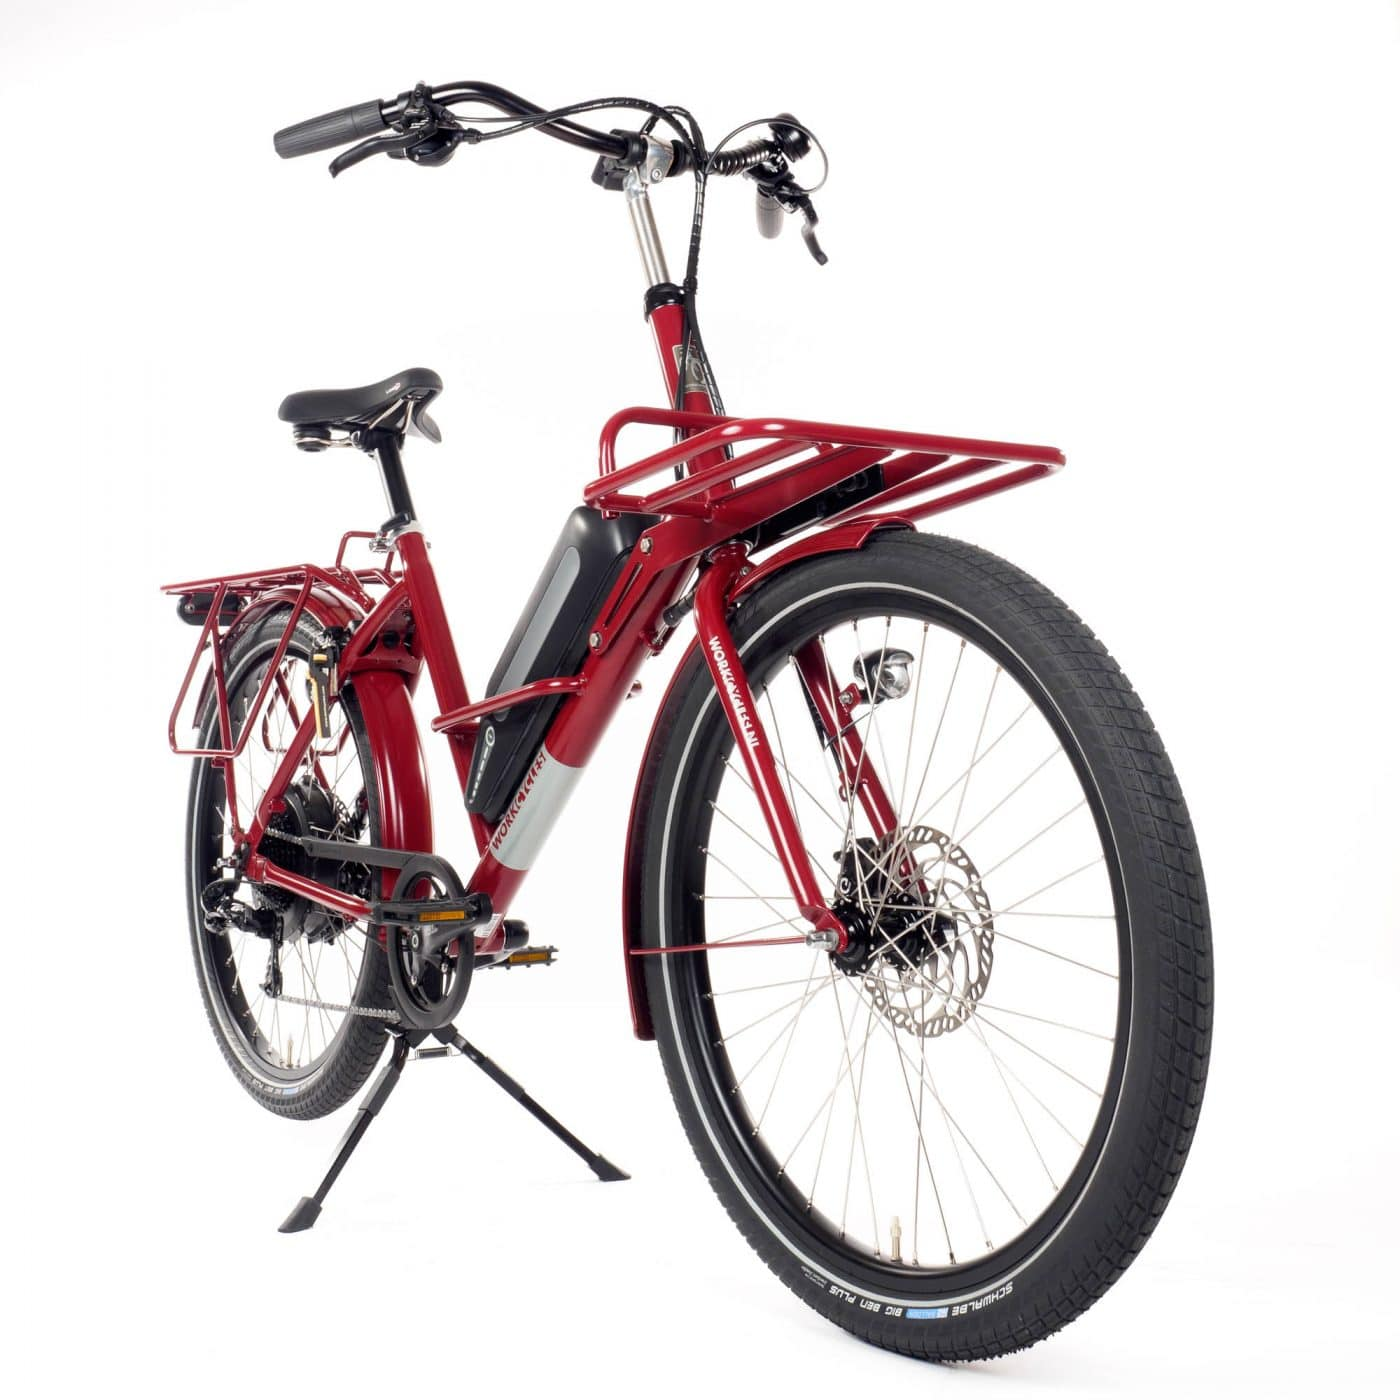 A deluxe electric assist version of our versatile and sweet riding Fr8 transport bike. The Fr8 'RWD' (Rear Wheel Drive) is a smooth and sophisticated electric assist system made by Neodrives in Germany.